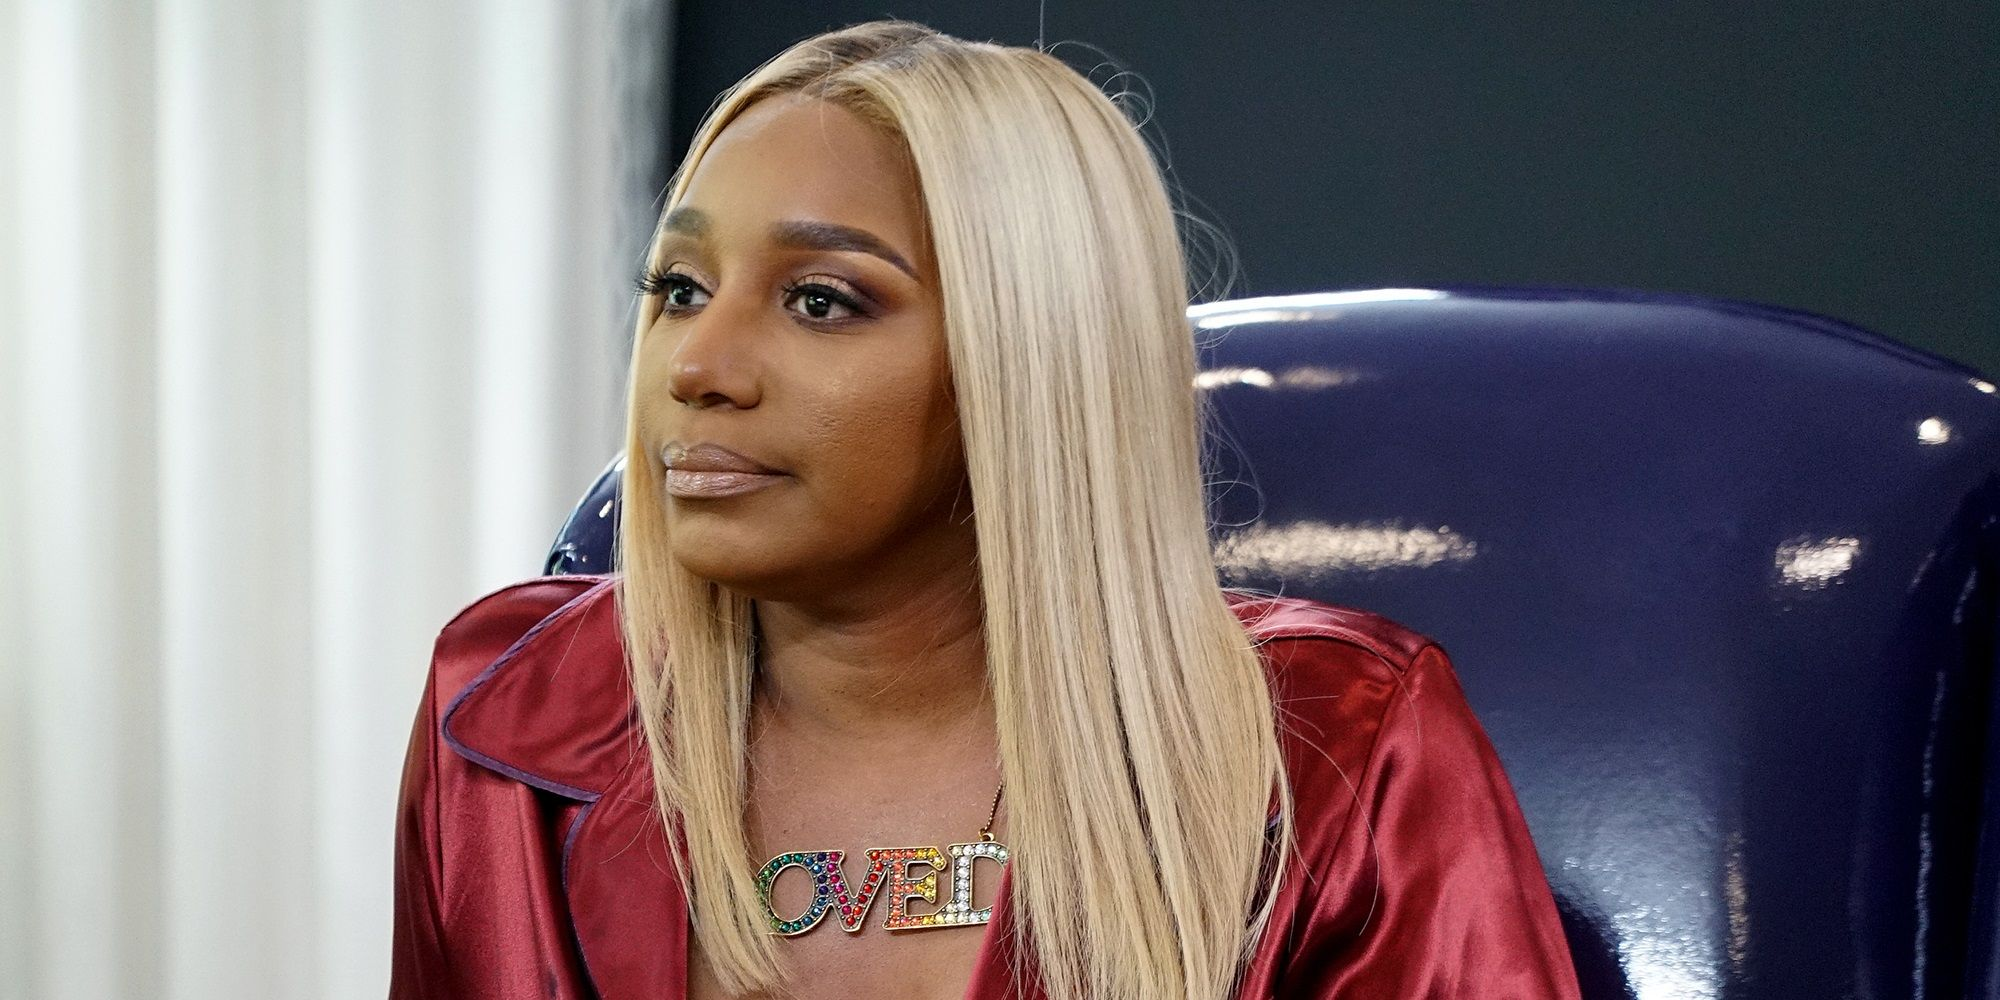 nene-leakes-talks-about-racist-studios-and-tells-fans-to-believe-their-eyes